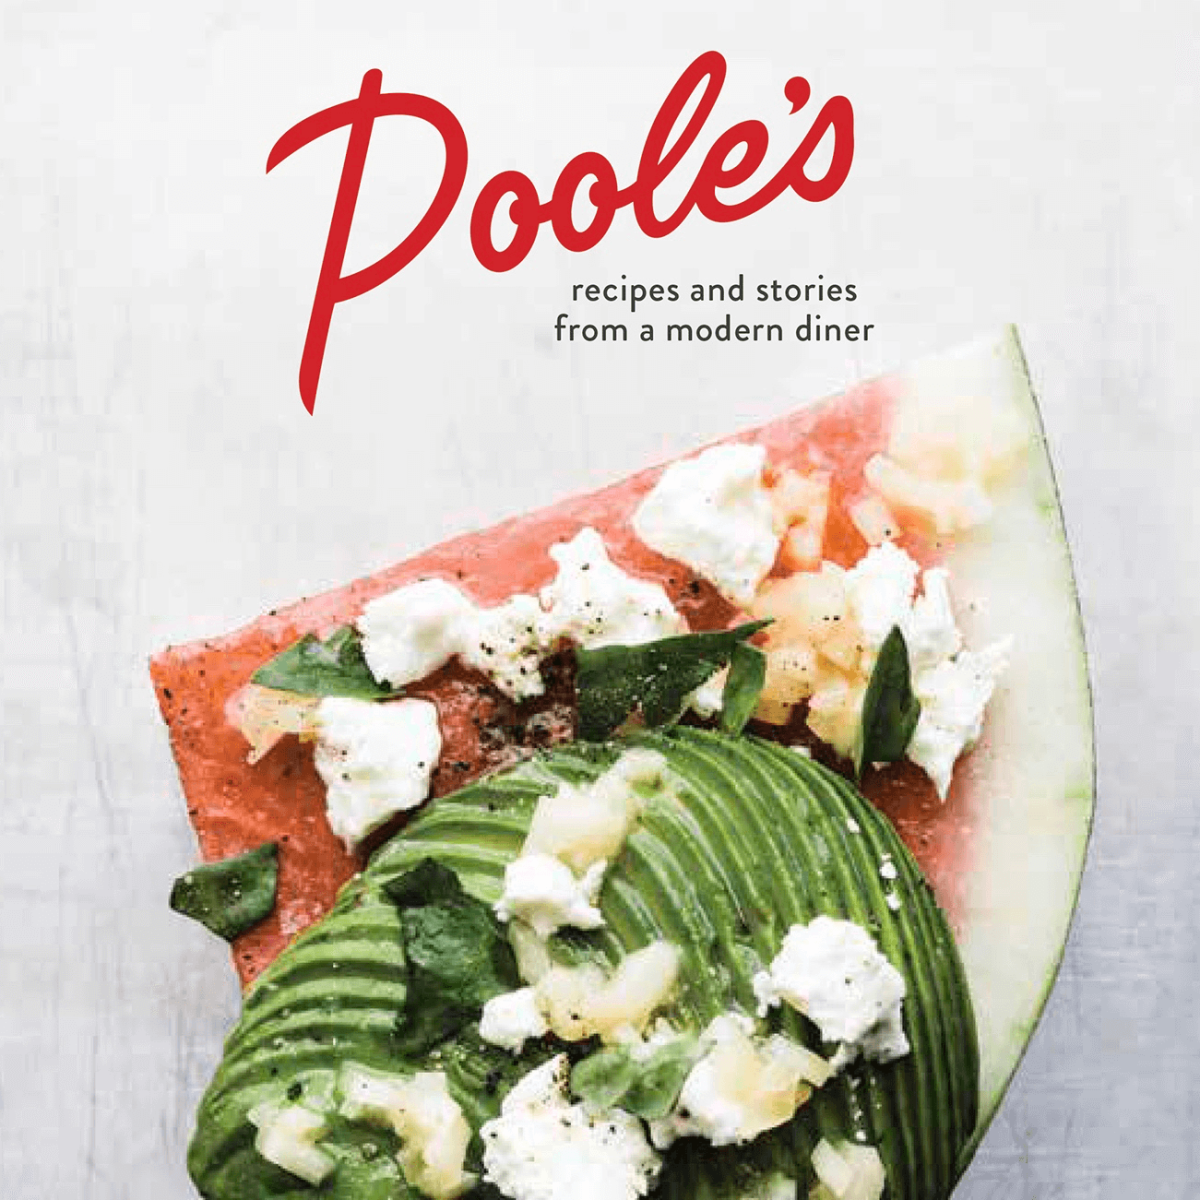 Ashley Christensen Poole's Diner cookbook